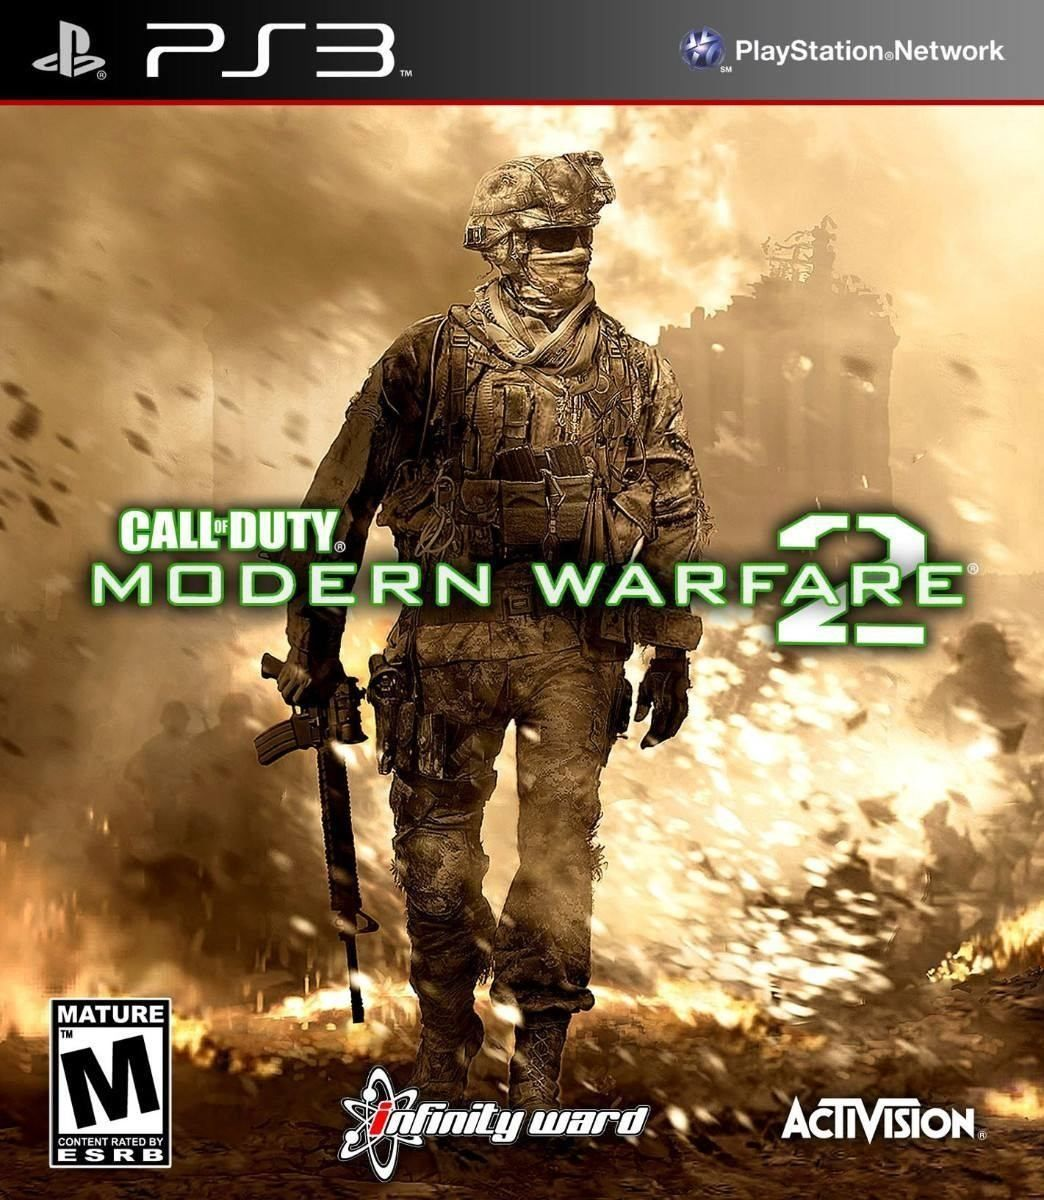 Call of duty modern warfare 2 ign rating - Call Of Duty Modern Warfare 2